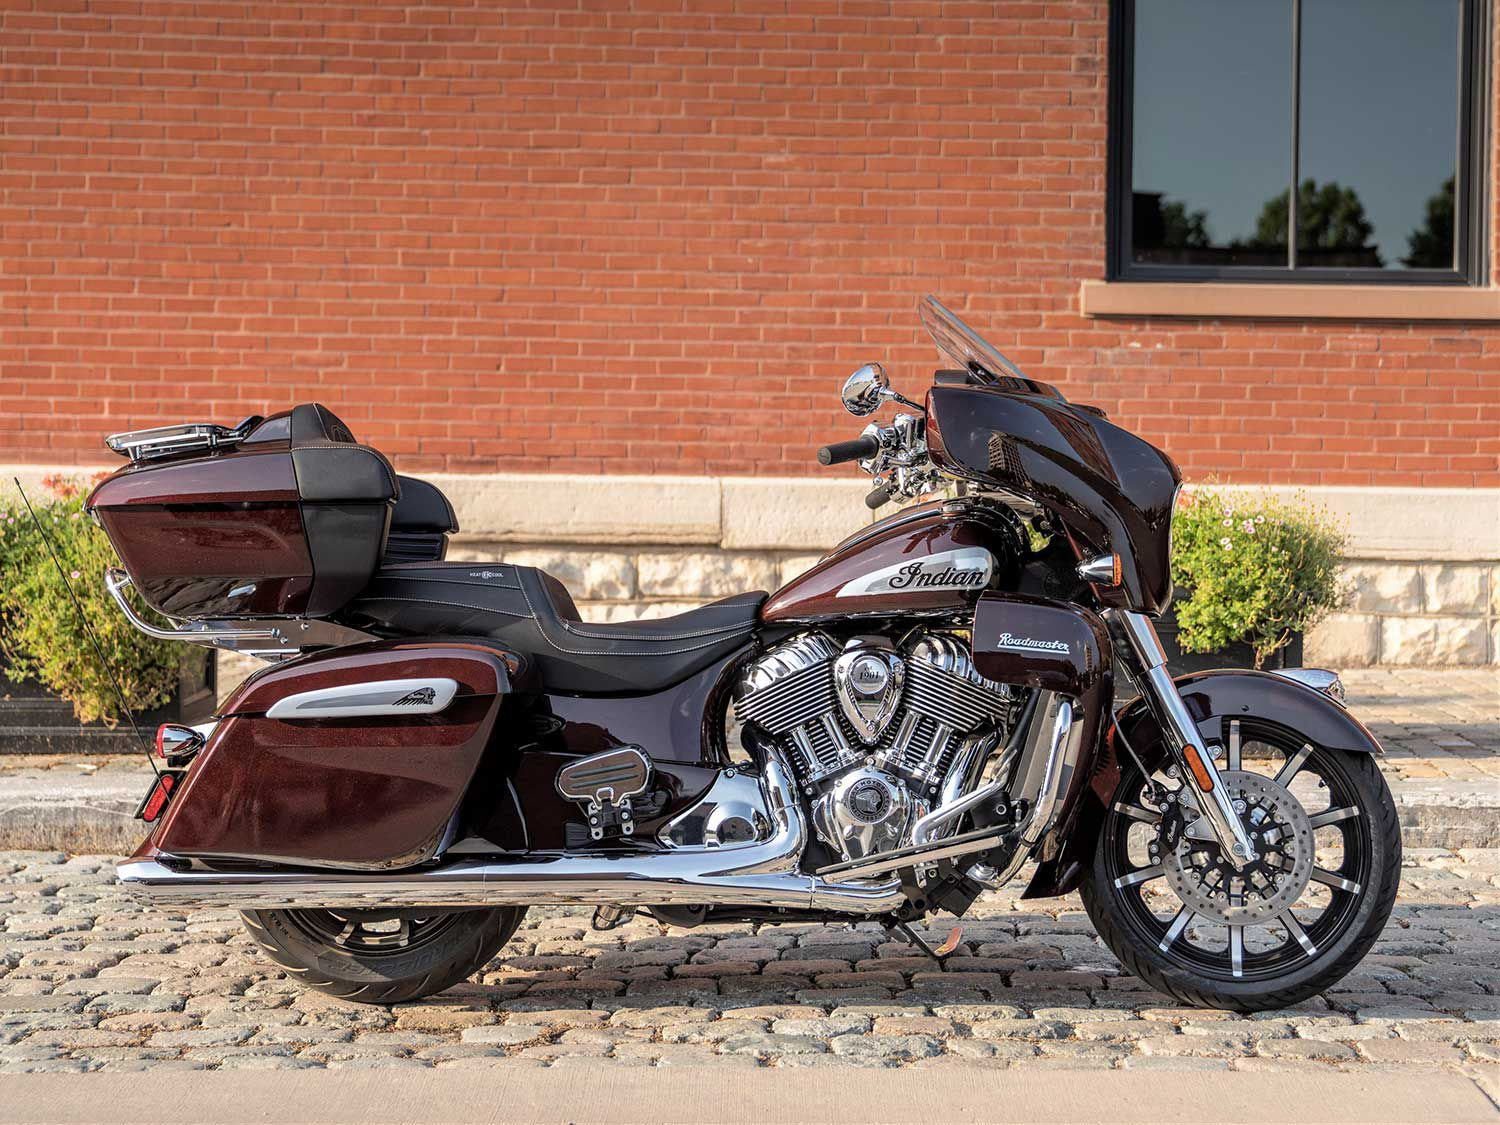 Also new for 2021 is the Roadmaster Limited, which debuts just above the Roadmaster Dark Horse with an MSRP of $30,749.